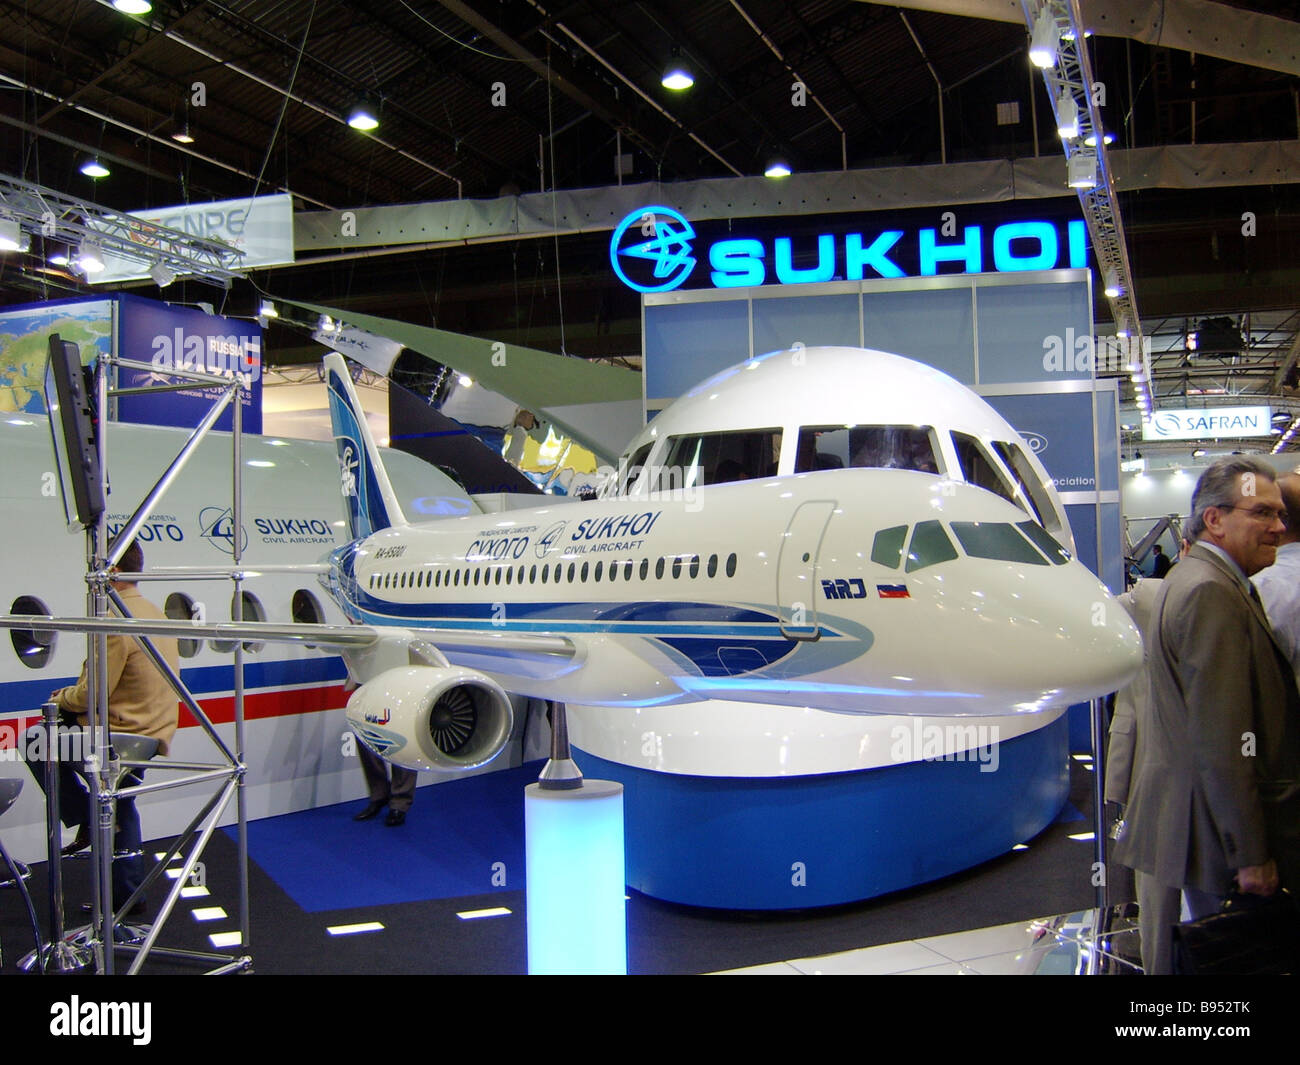 The Russian Sukhoi aircraft holding is presented at the 46th air show in Le Bourget France - Stock Image